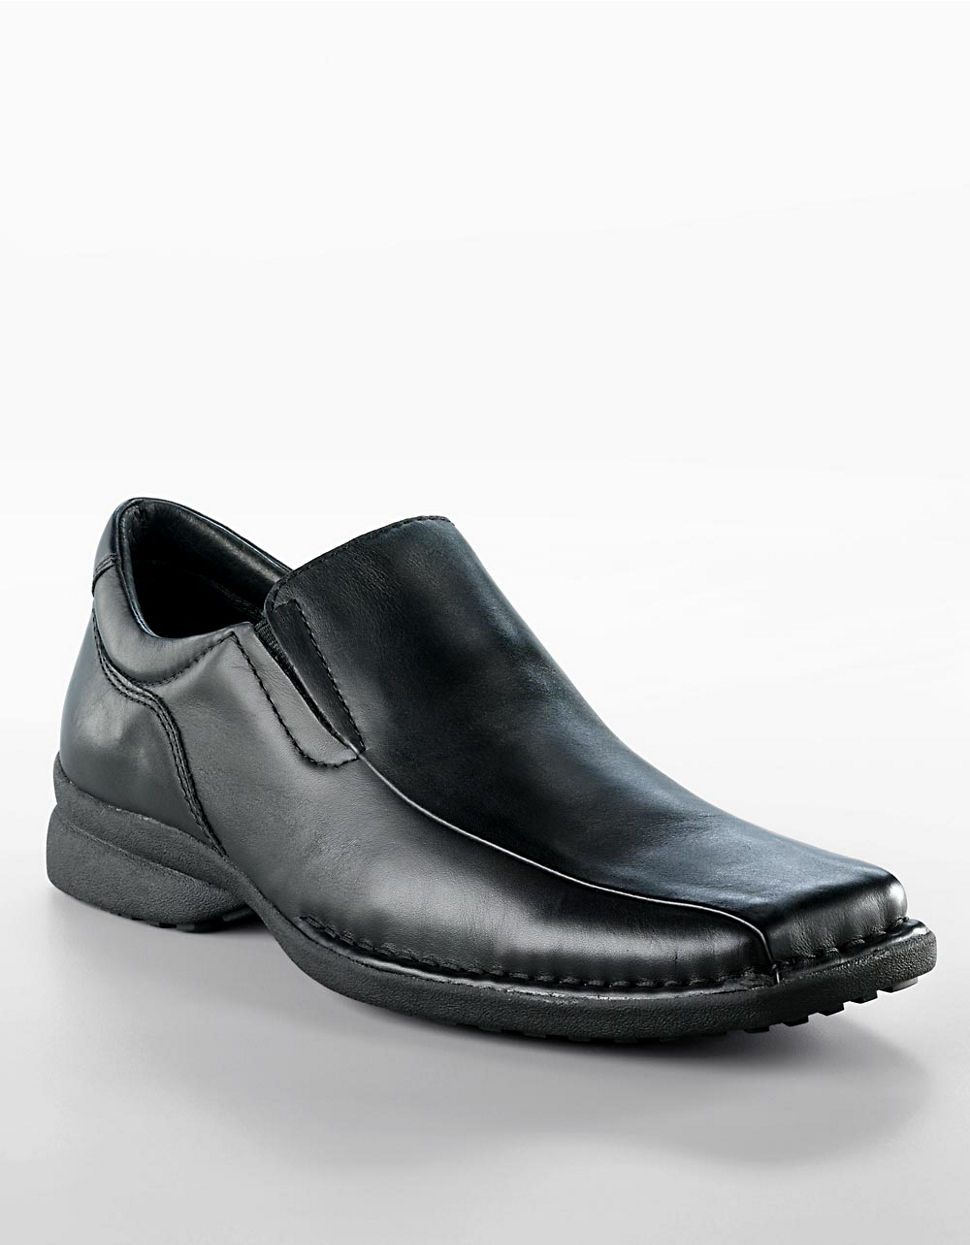 kenneth cole reaction punchual casual leather slip on